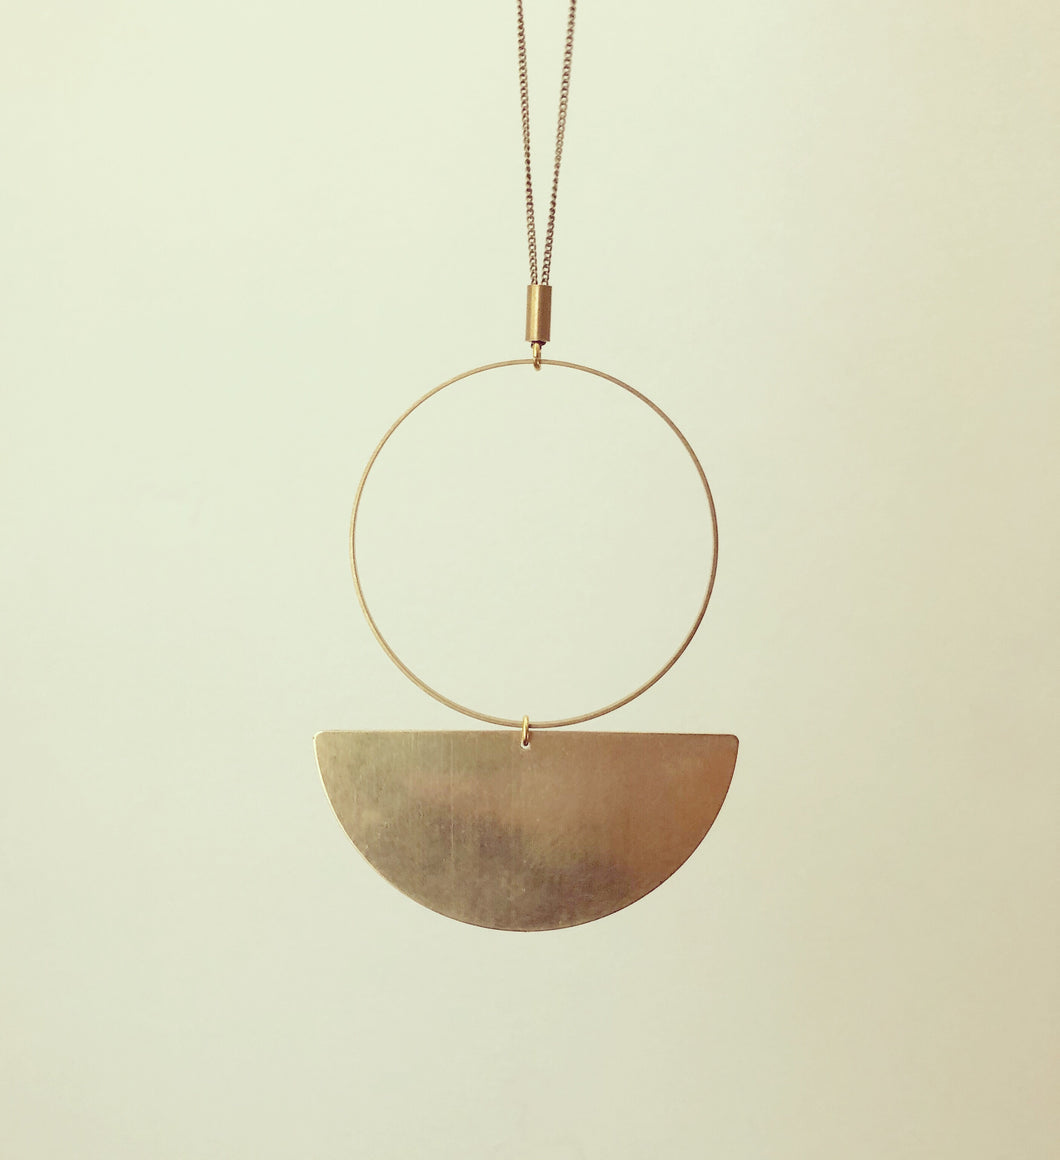 The Stüye Necklace